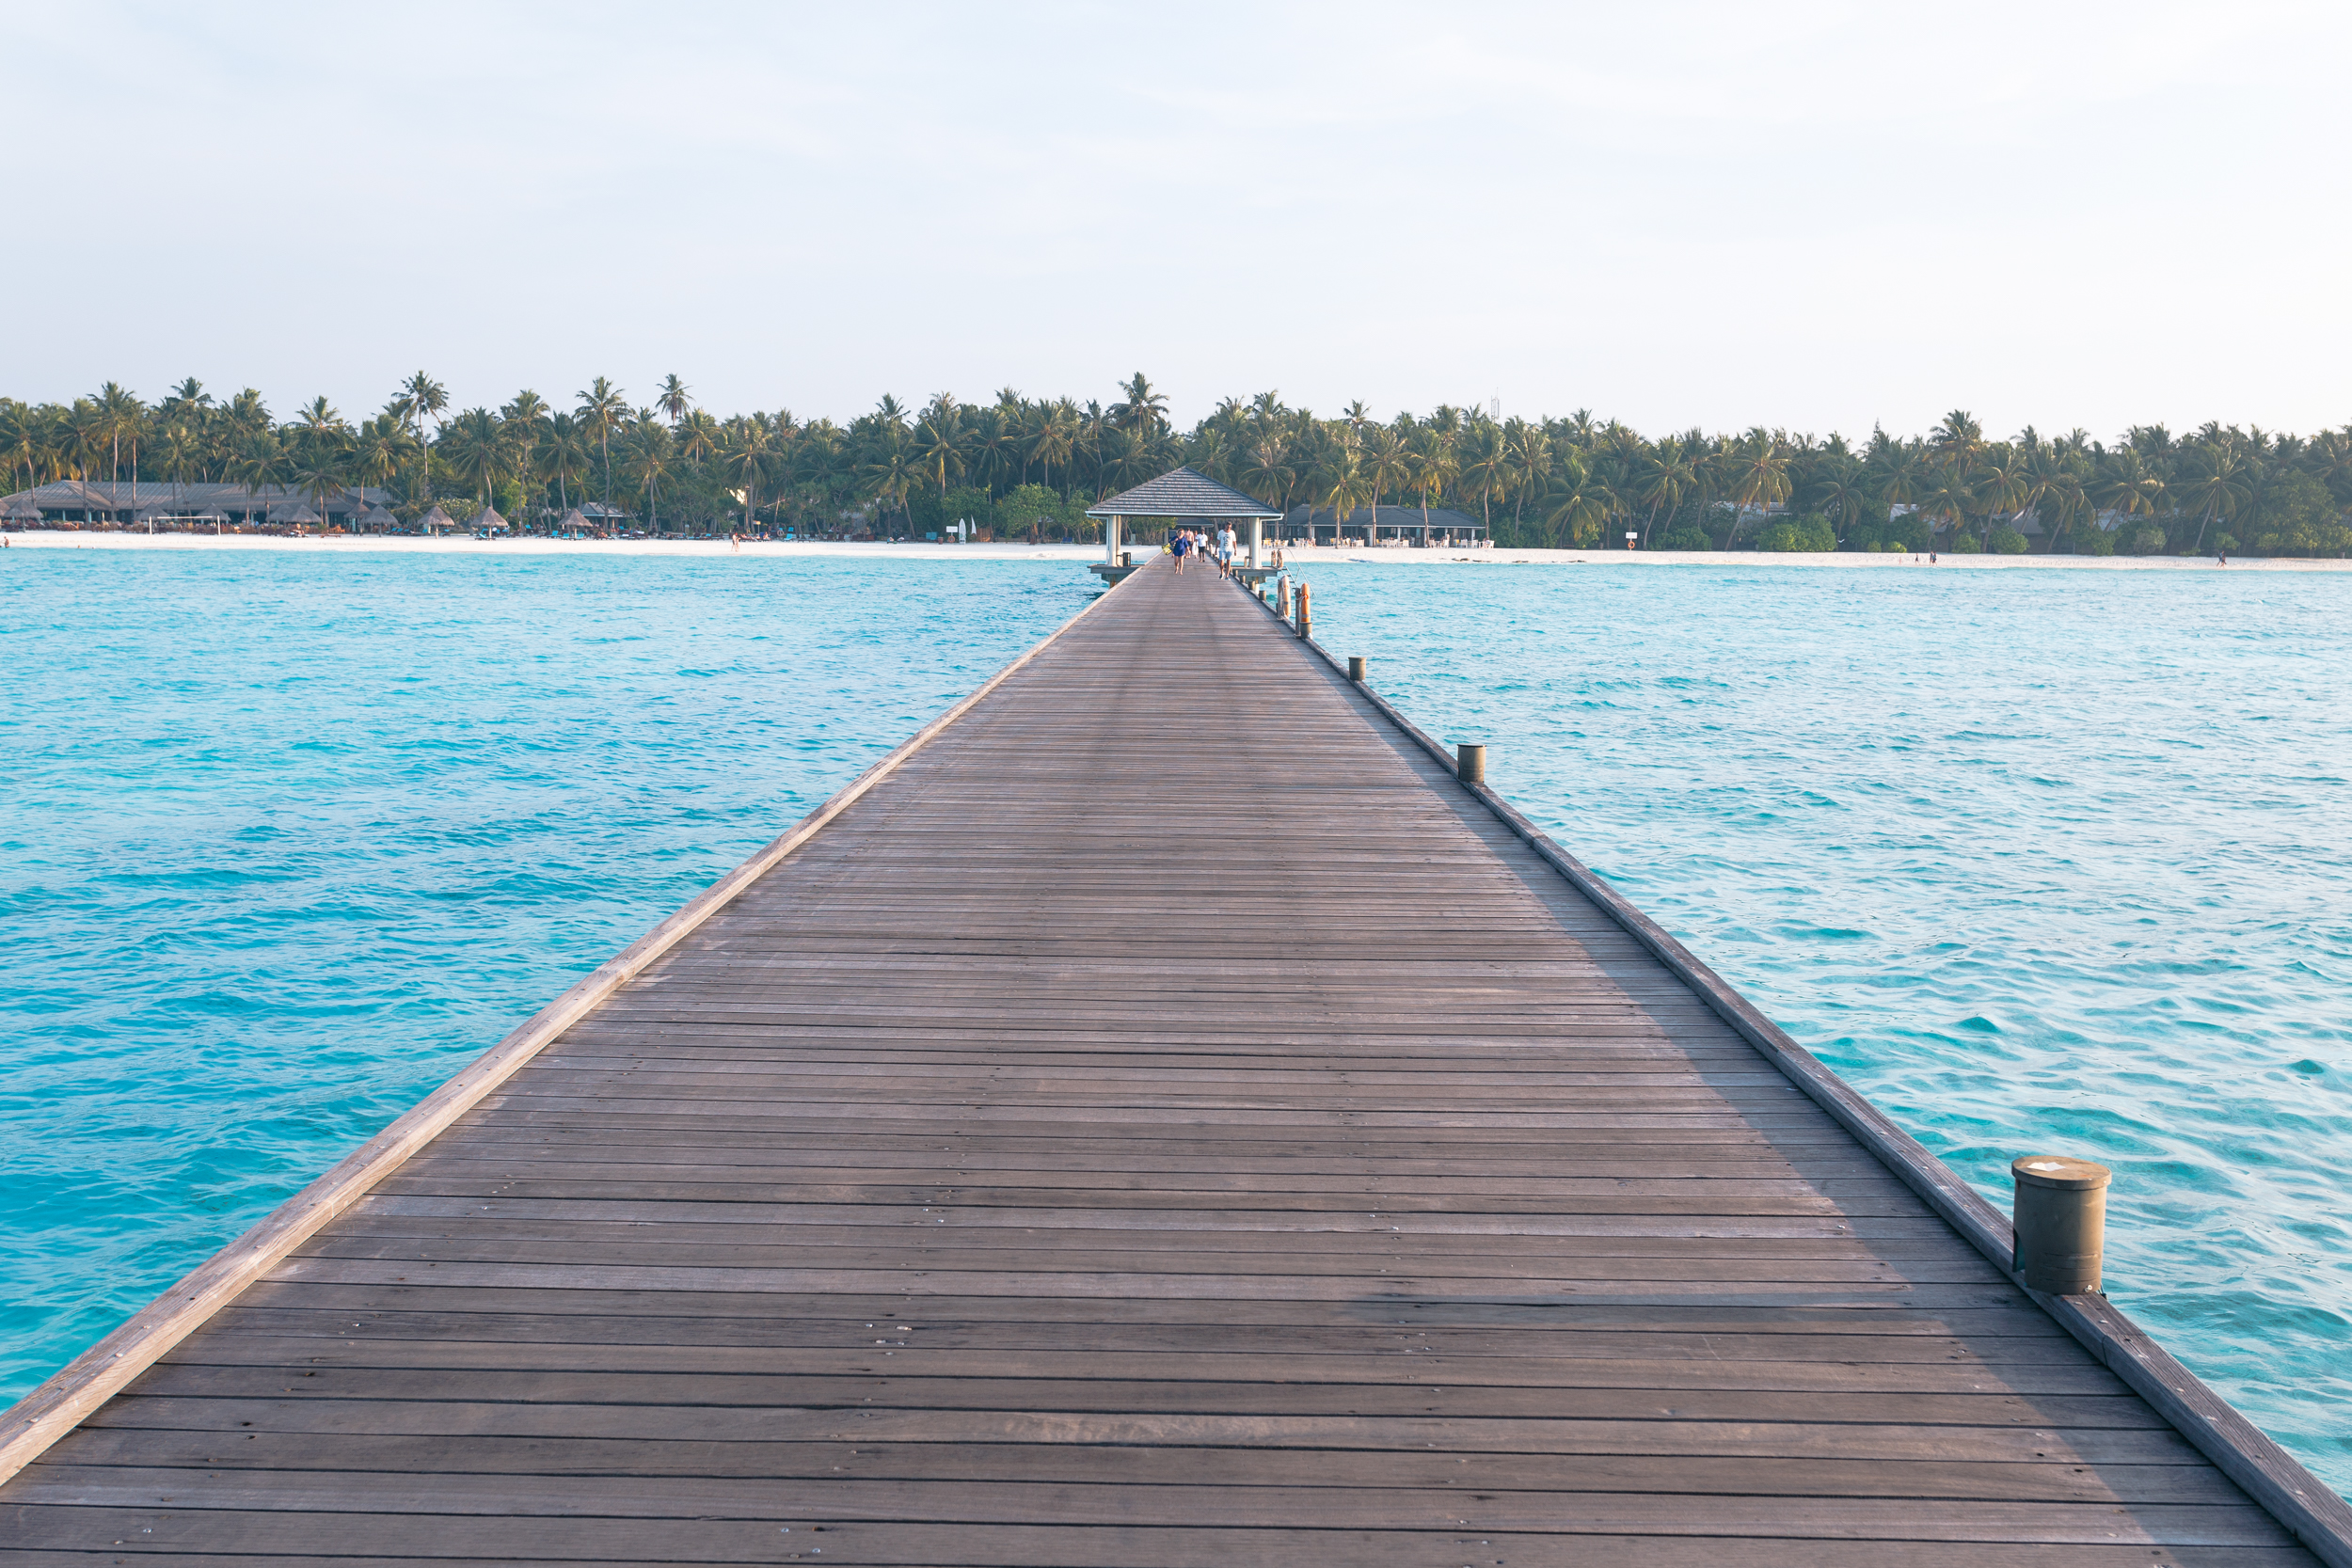 Endless Dock in the Maldives